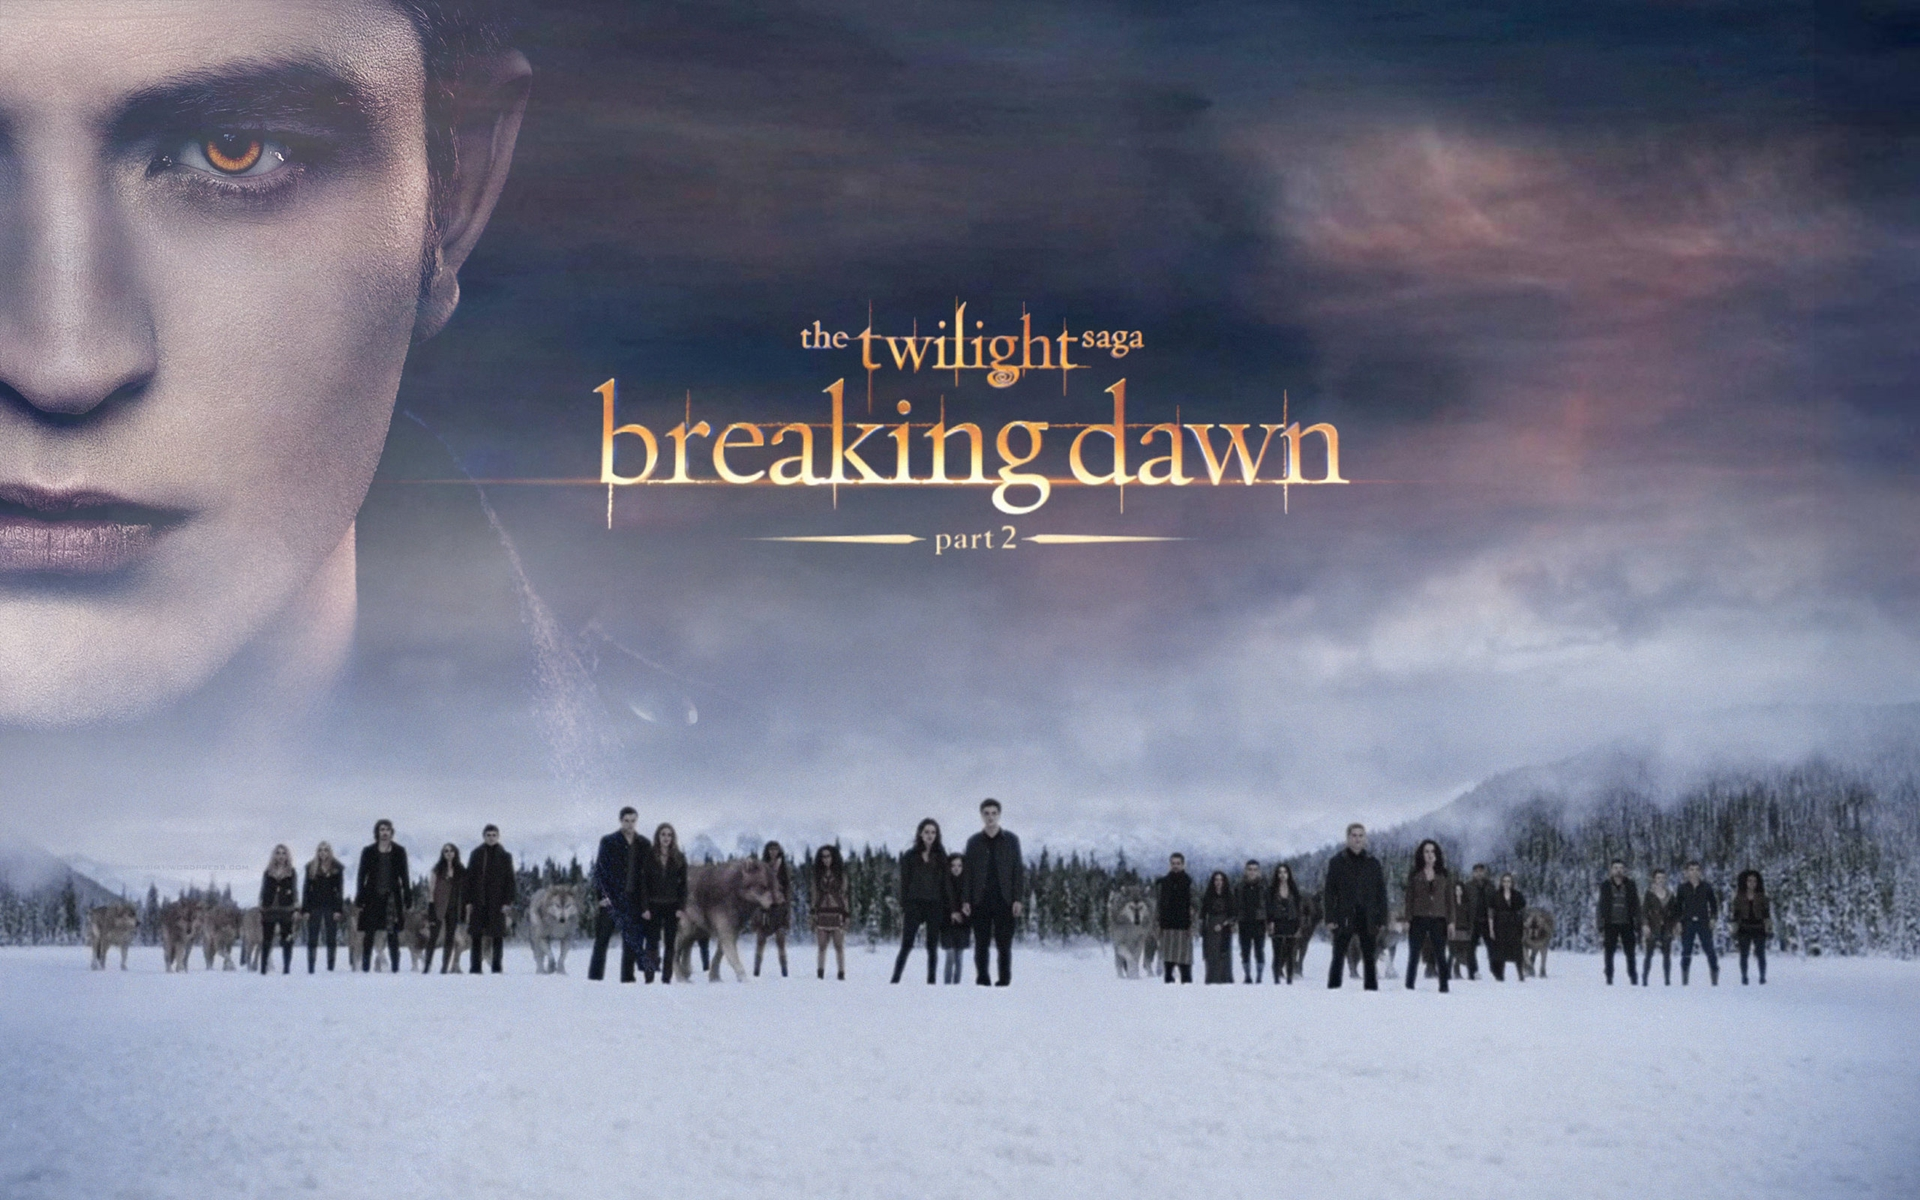 Twilight breakdown Saga 2